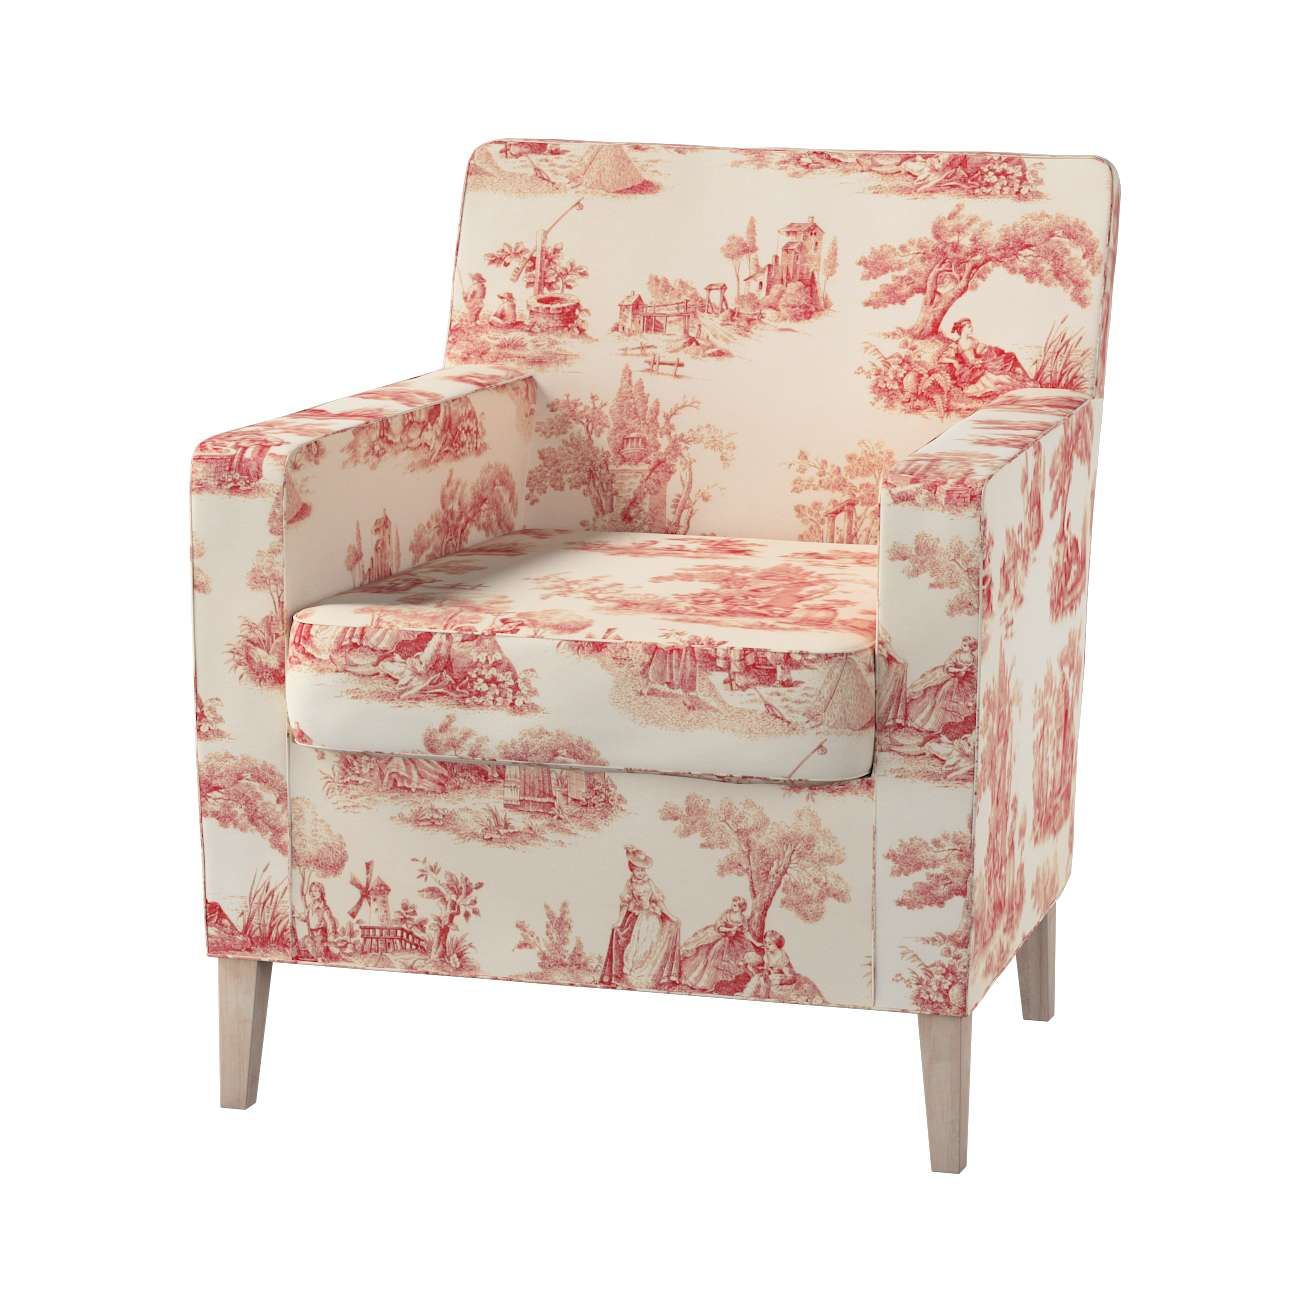 Karlstad tall chair cover in collection Avinon, fabric: 132-15